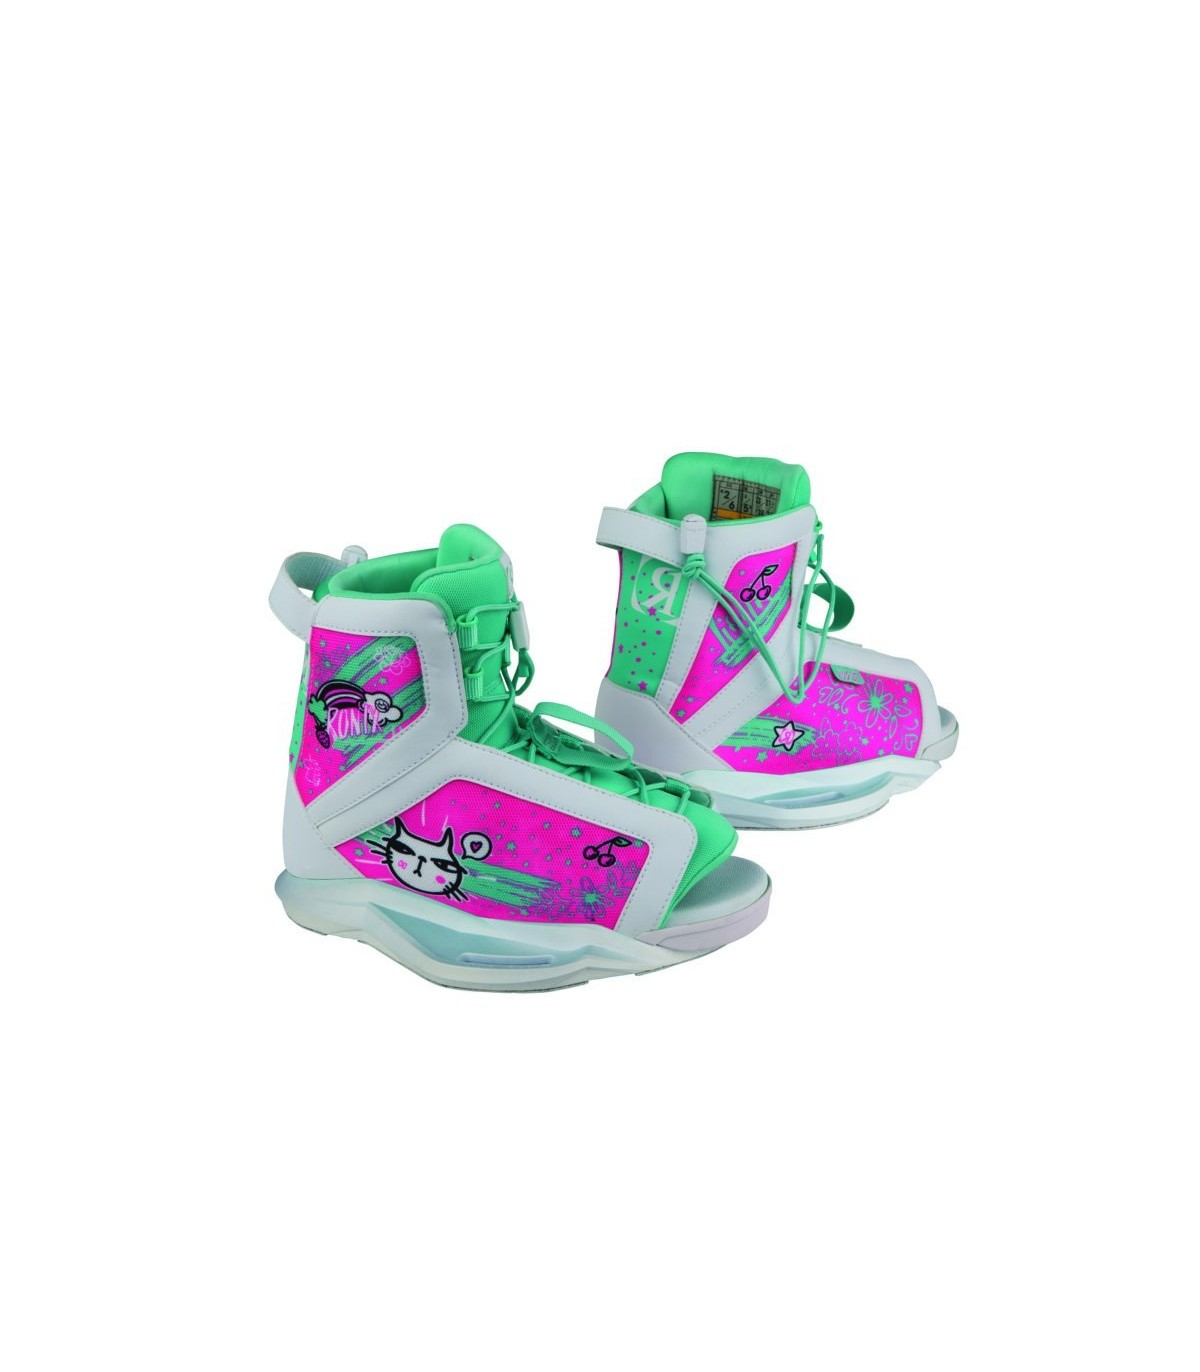 2019 Ronix August Girl's Boot